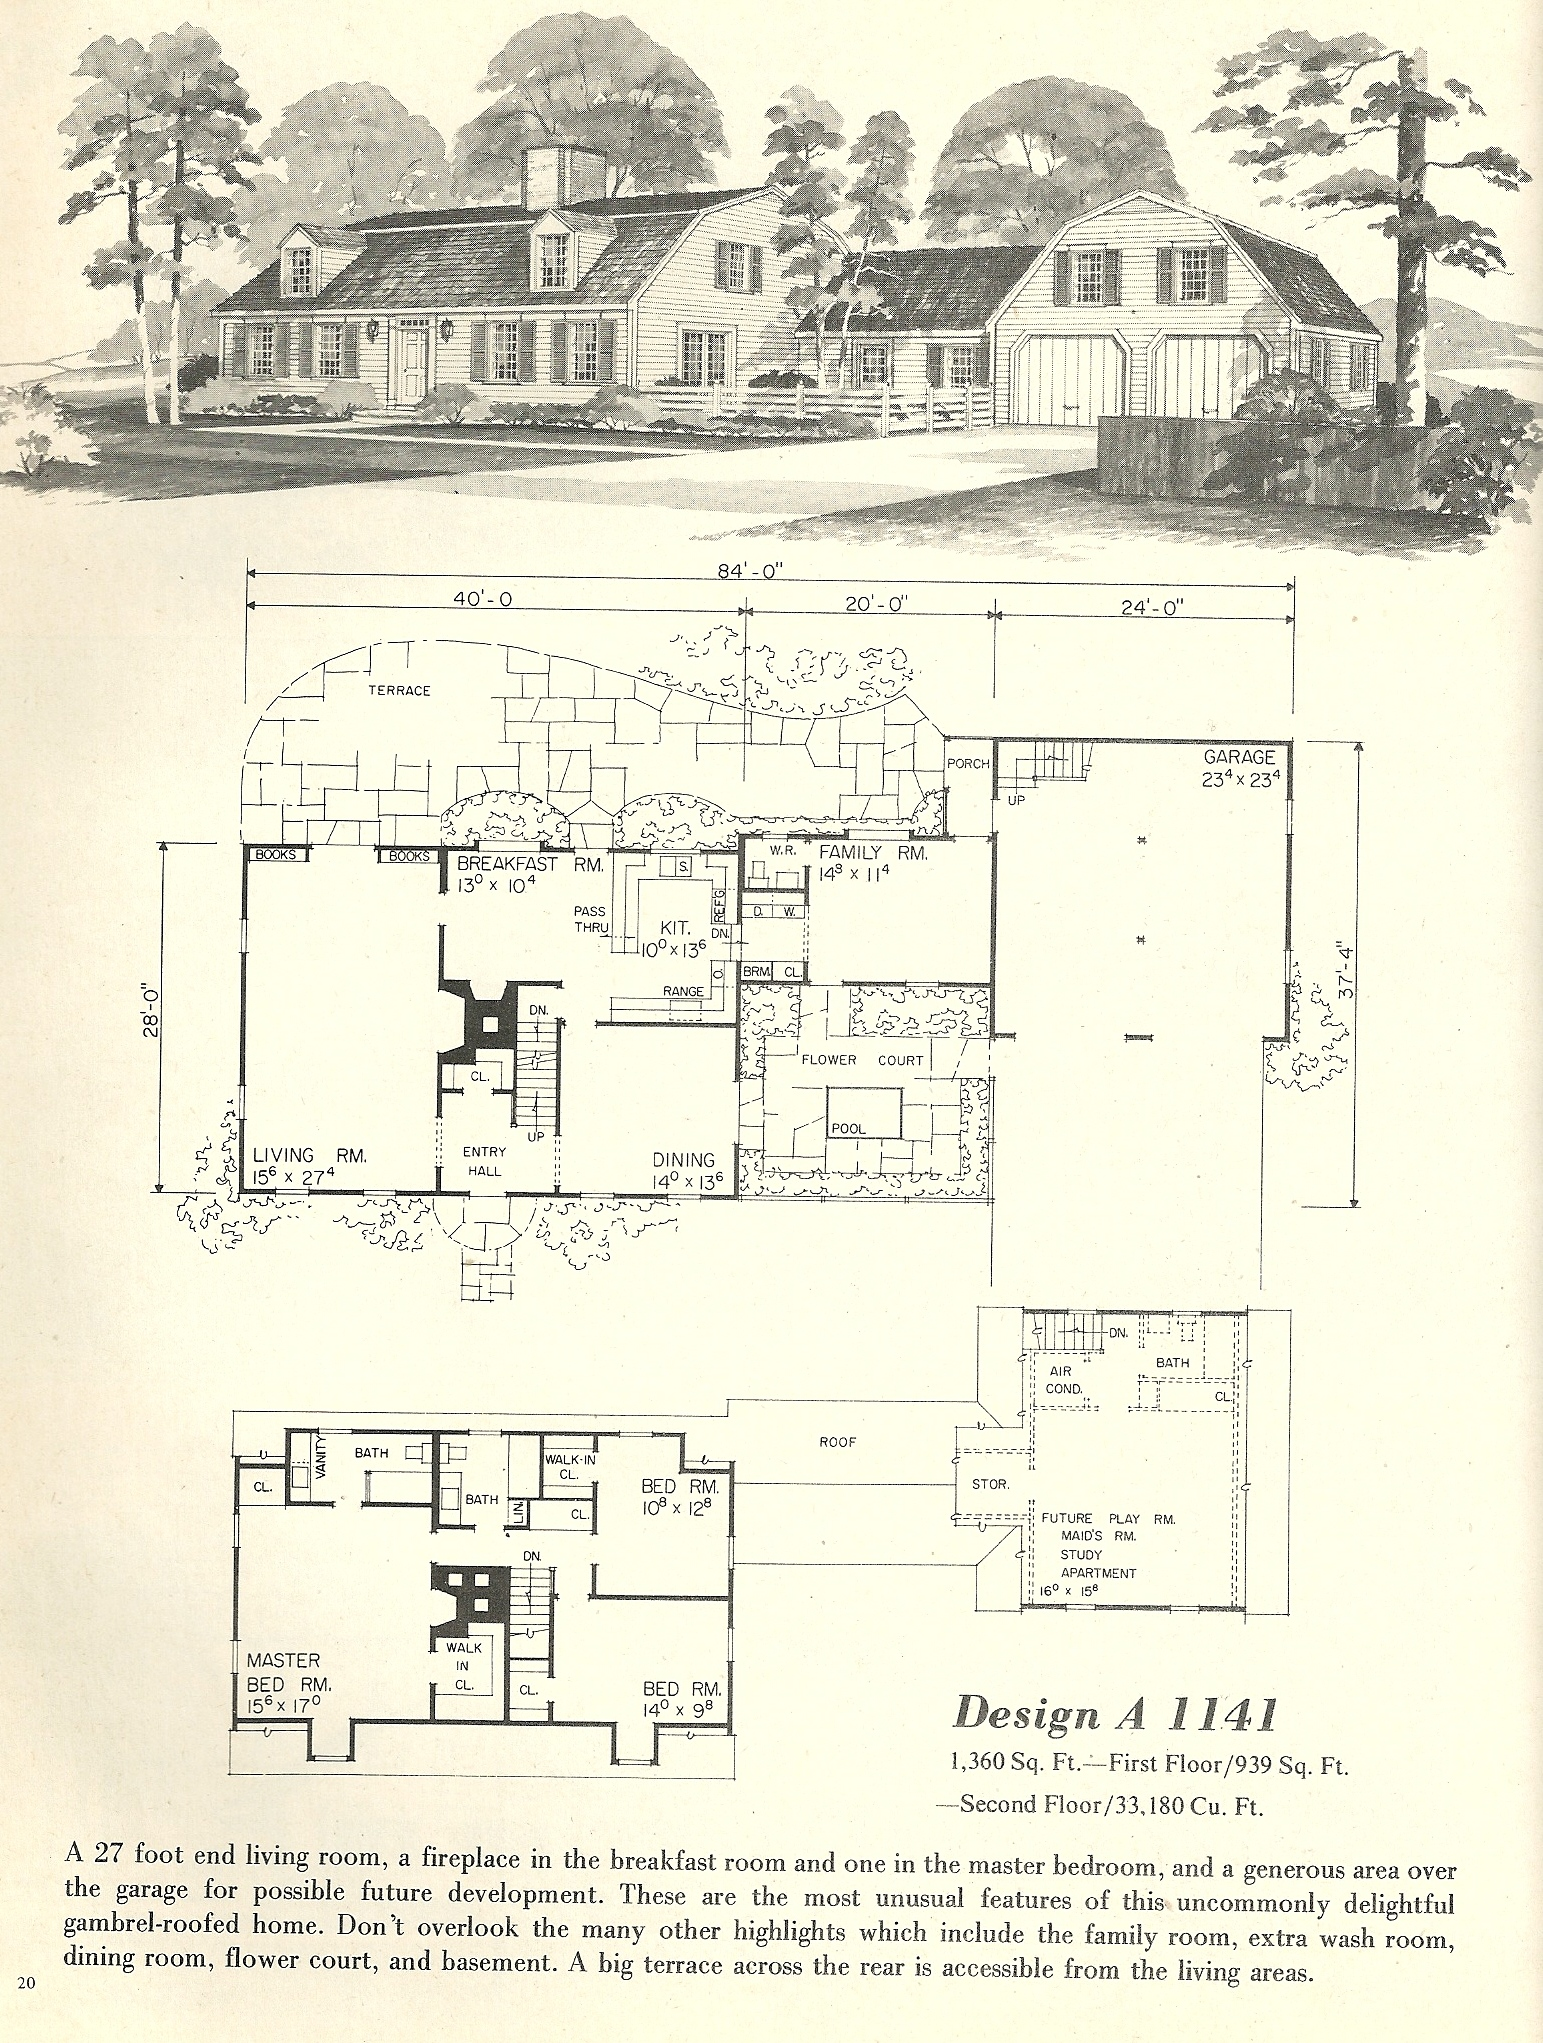 Vintage house plans 1141 antique alter ego for 1970s house floor plans